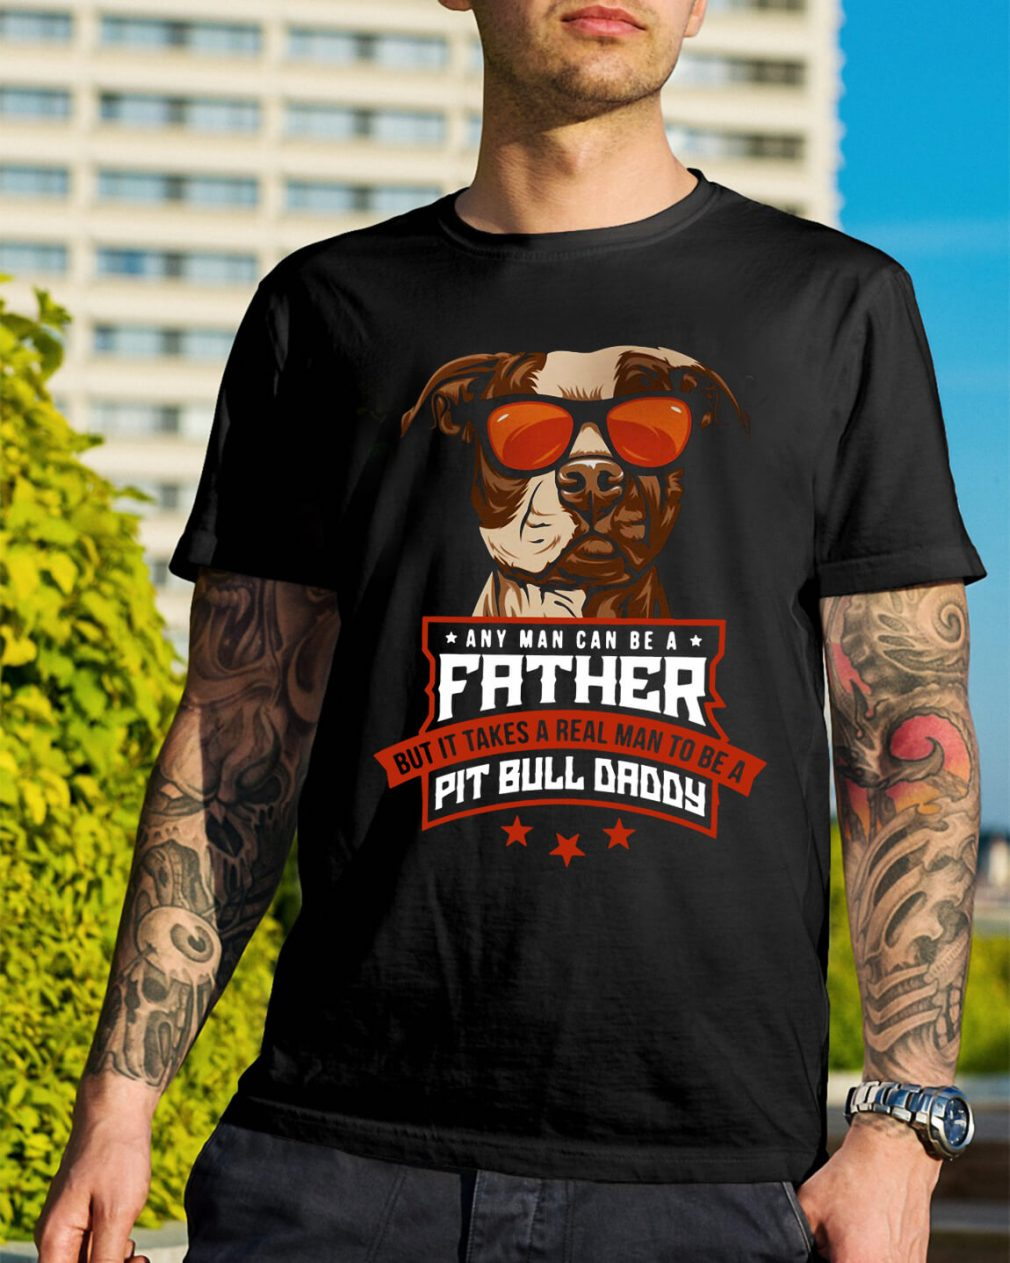 Any man can be a father but it takes a real man to be a Pit bull daddy shirt